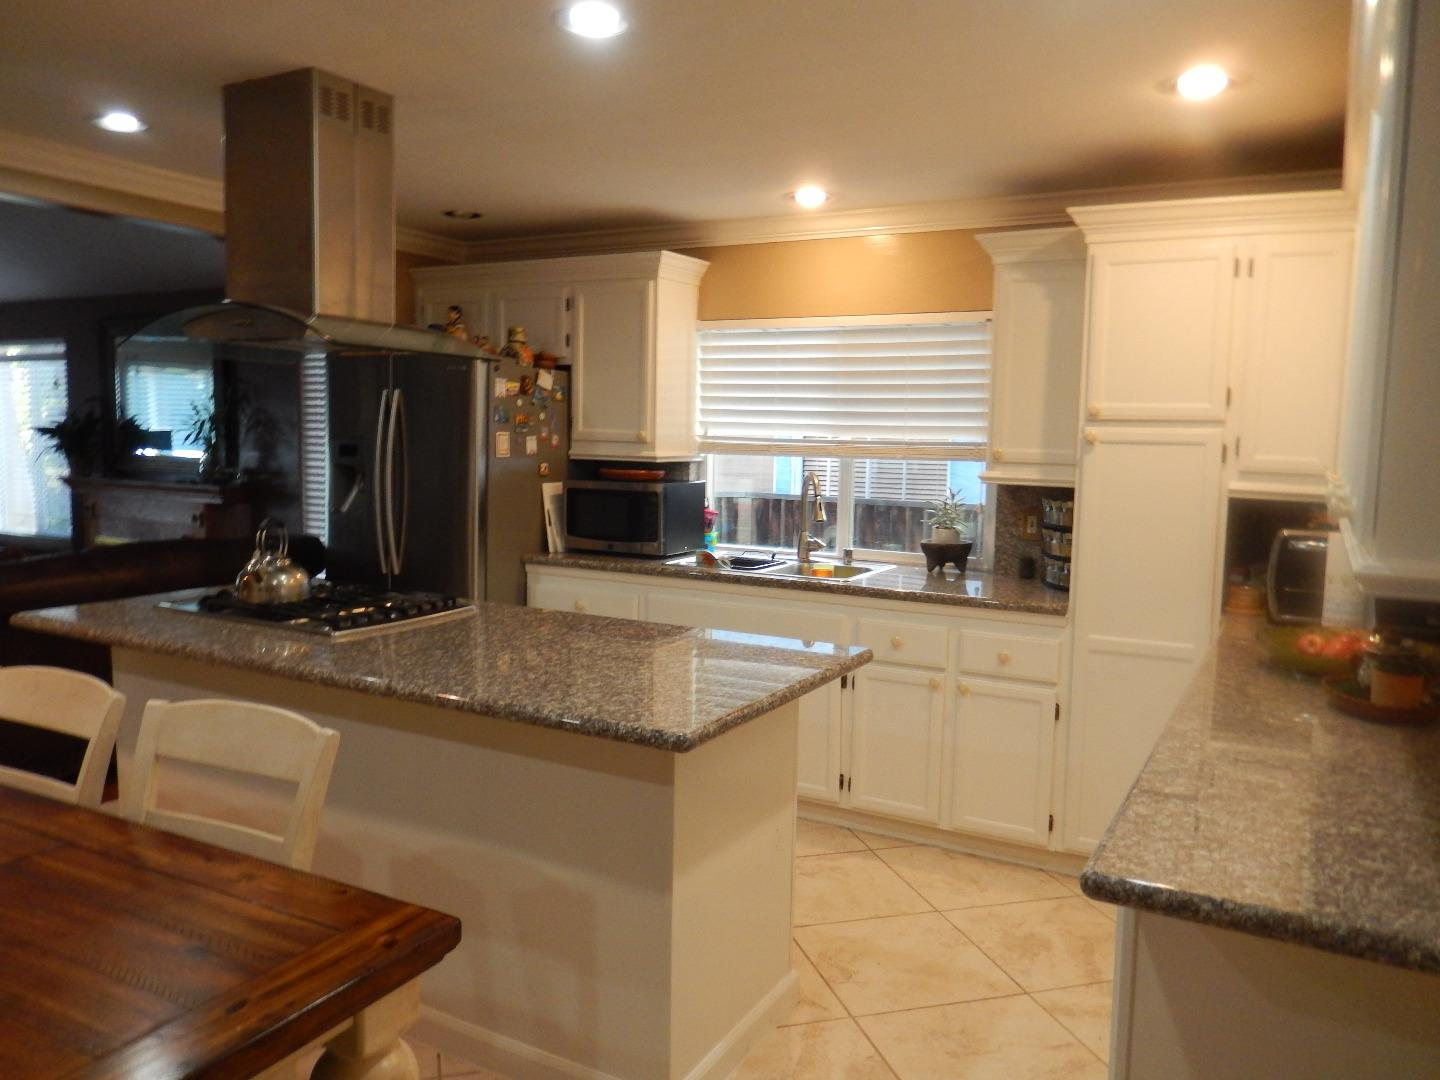 Additional photo for property listing at 4421 Dulcey Drive  San Jose, カリフォルニア 95136 アメリカ合衆国